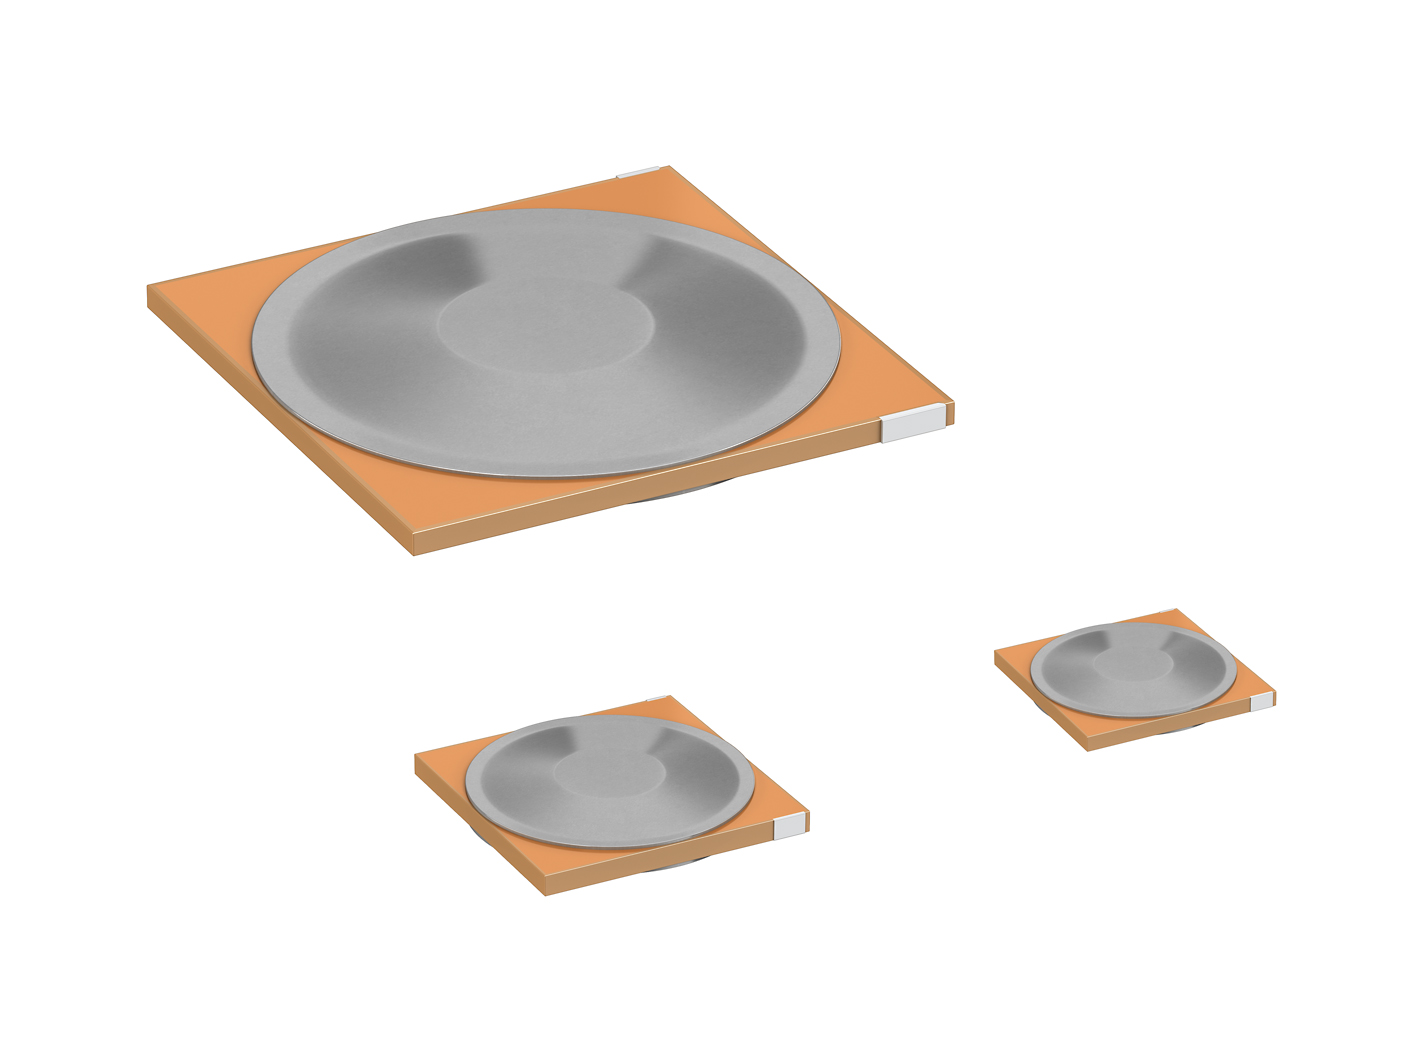 Piezo Actuators Achieve an Acceleration of 2.5 g